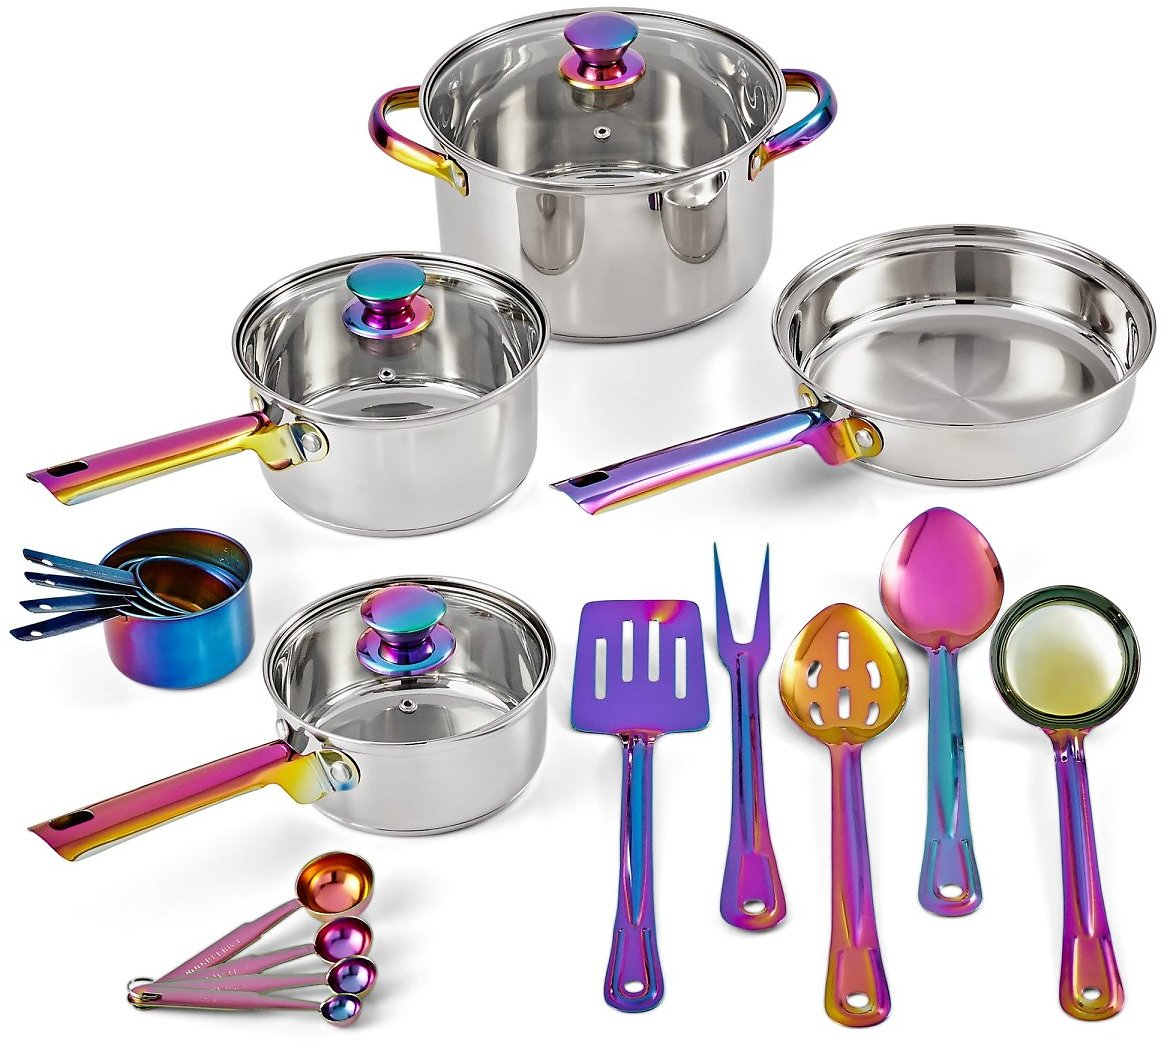 20-Piece Iridescent Stainless Steel Cookware Set, with Kitchen Utensils and Tools